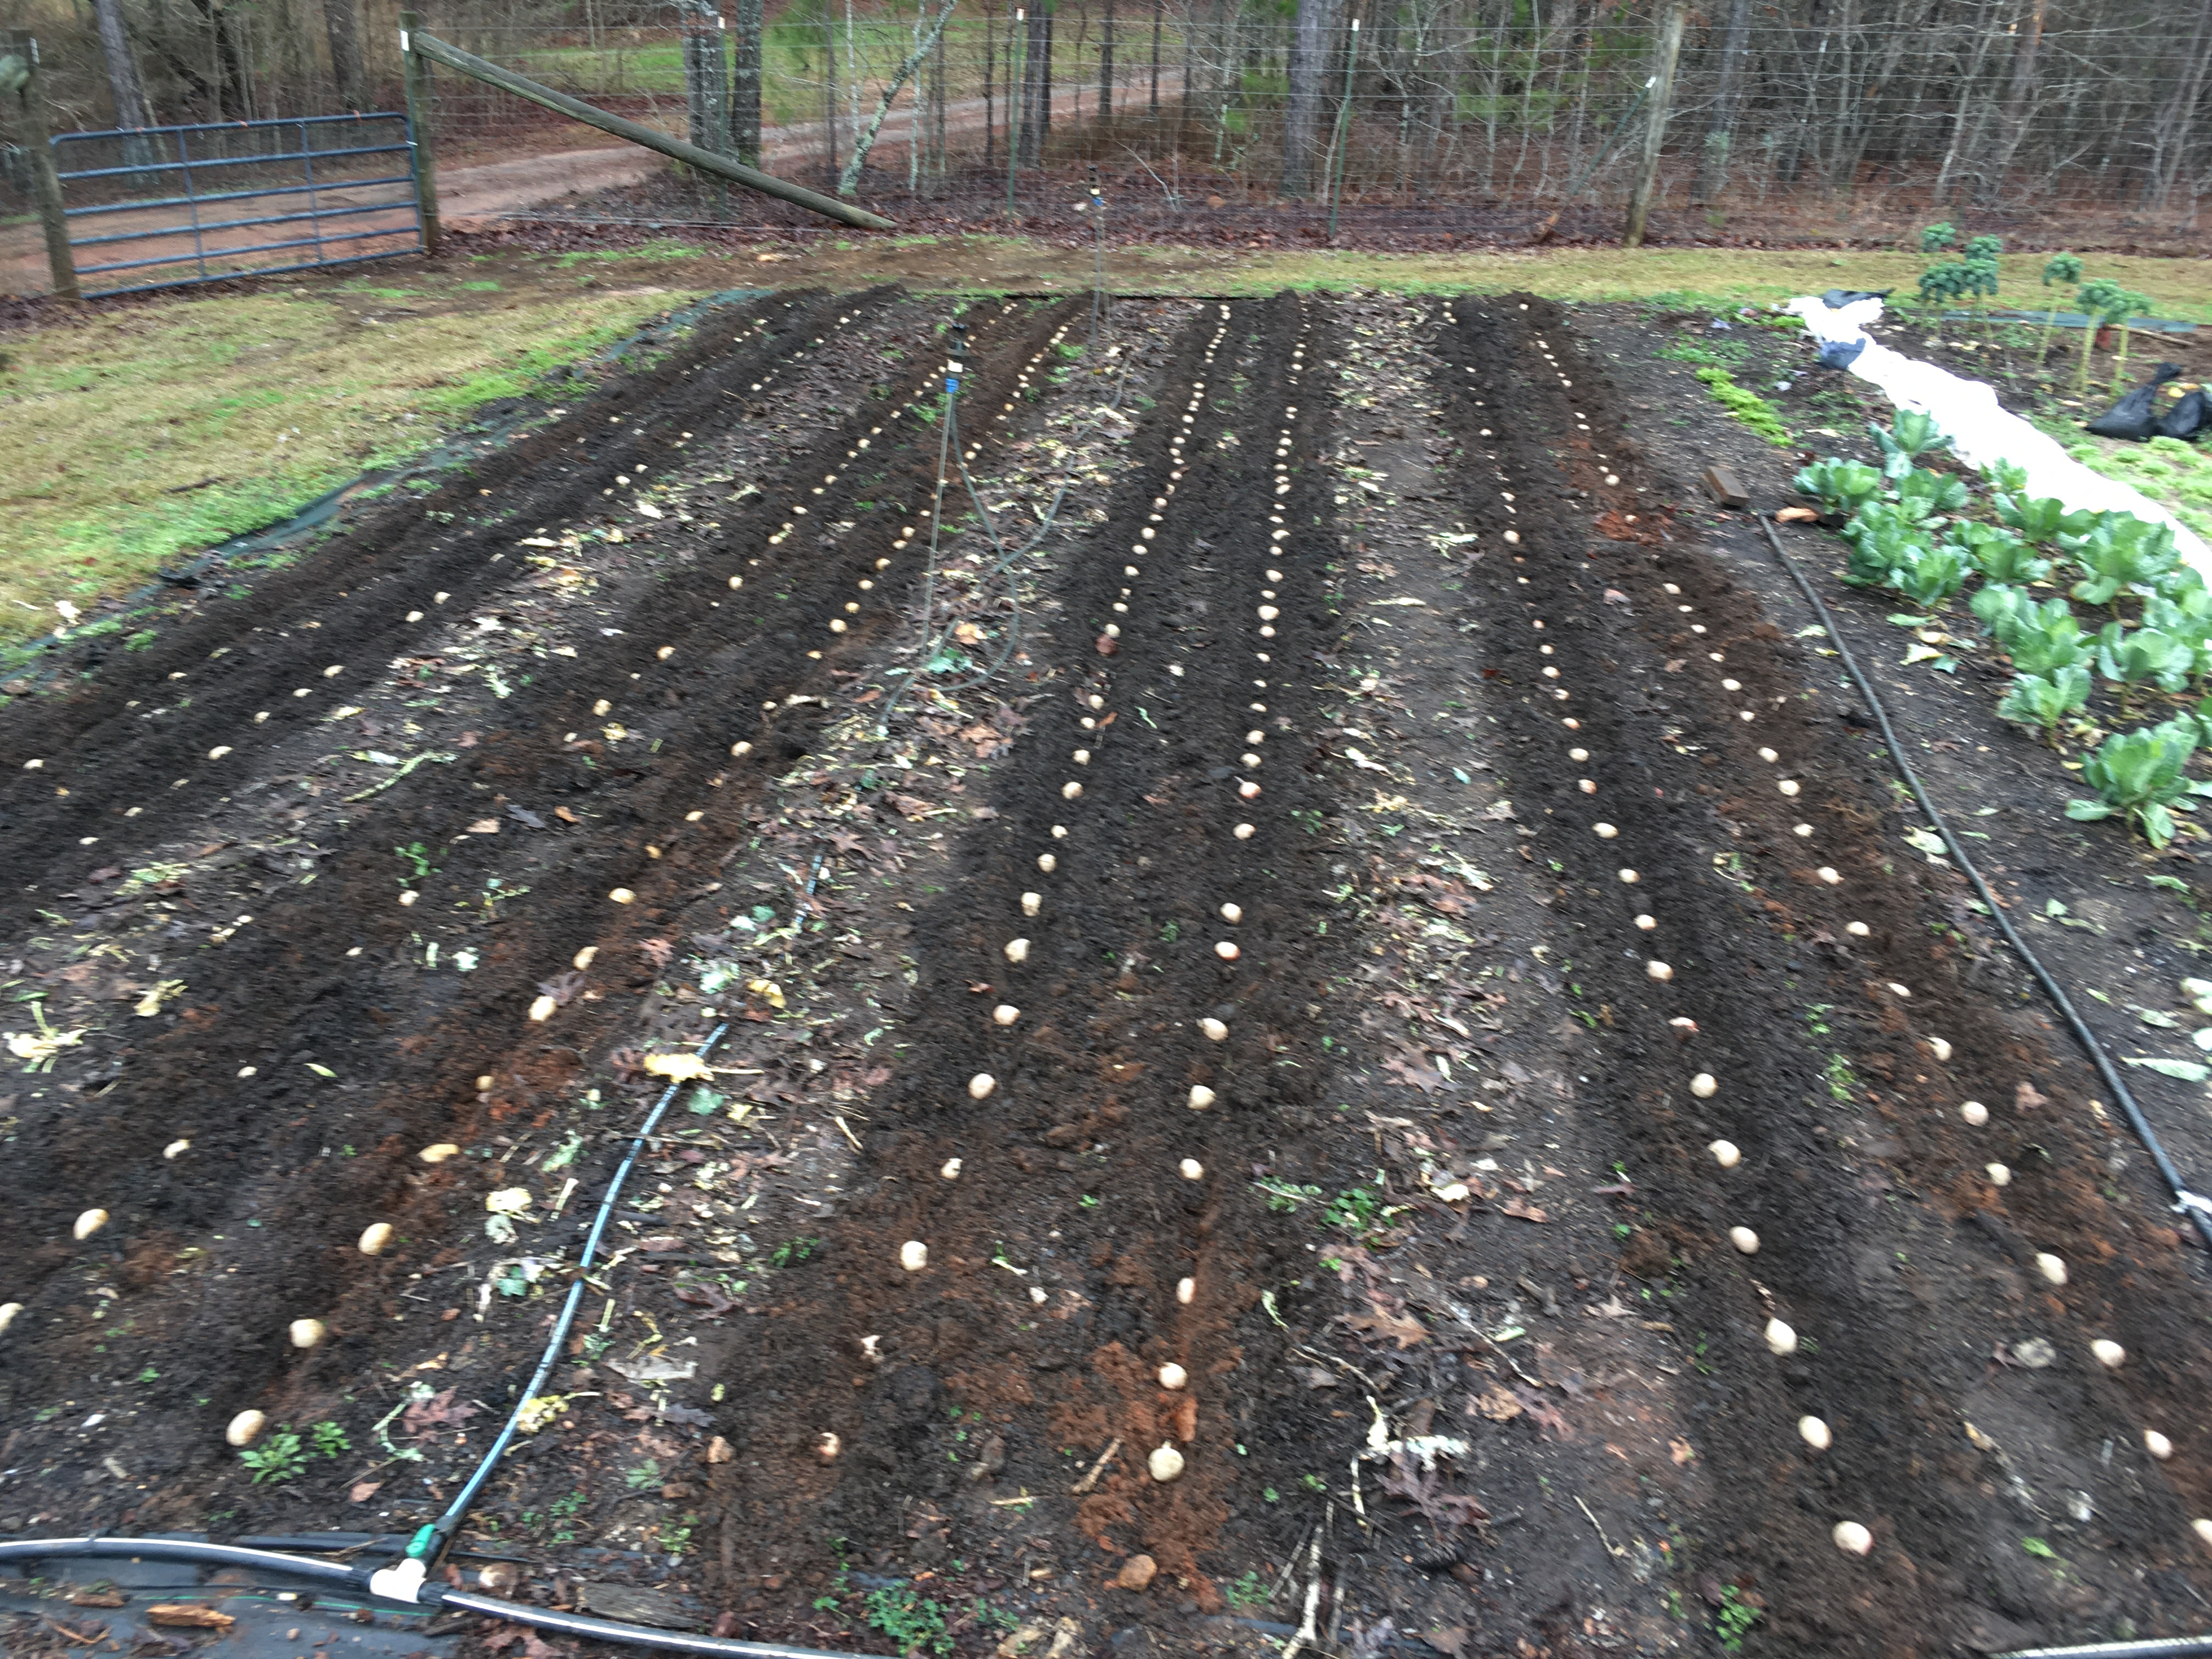 Planting Potatoes while it is Snowing!